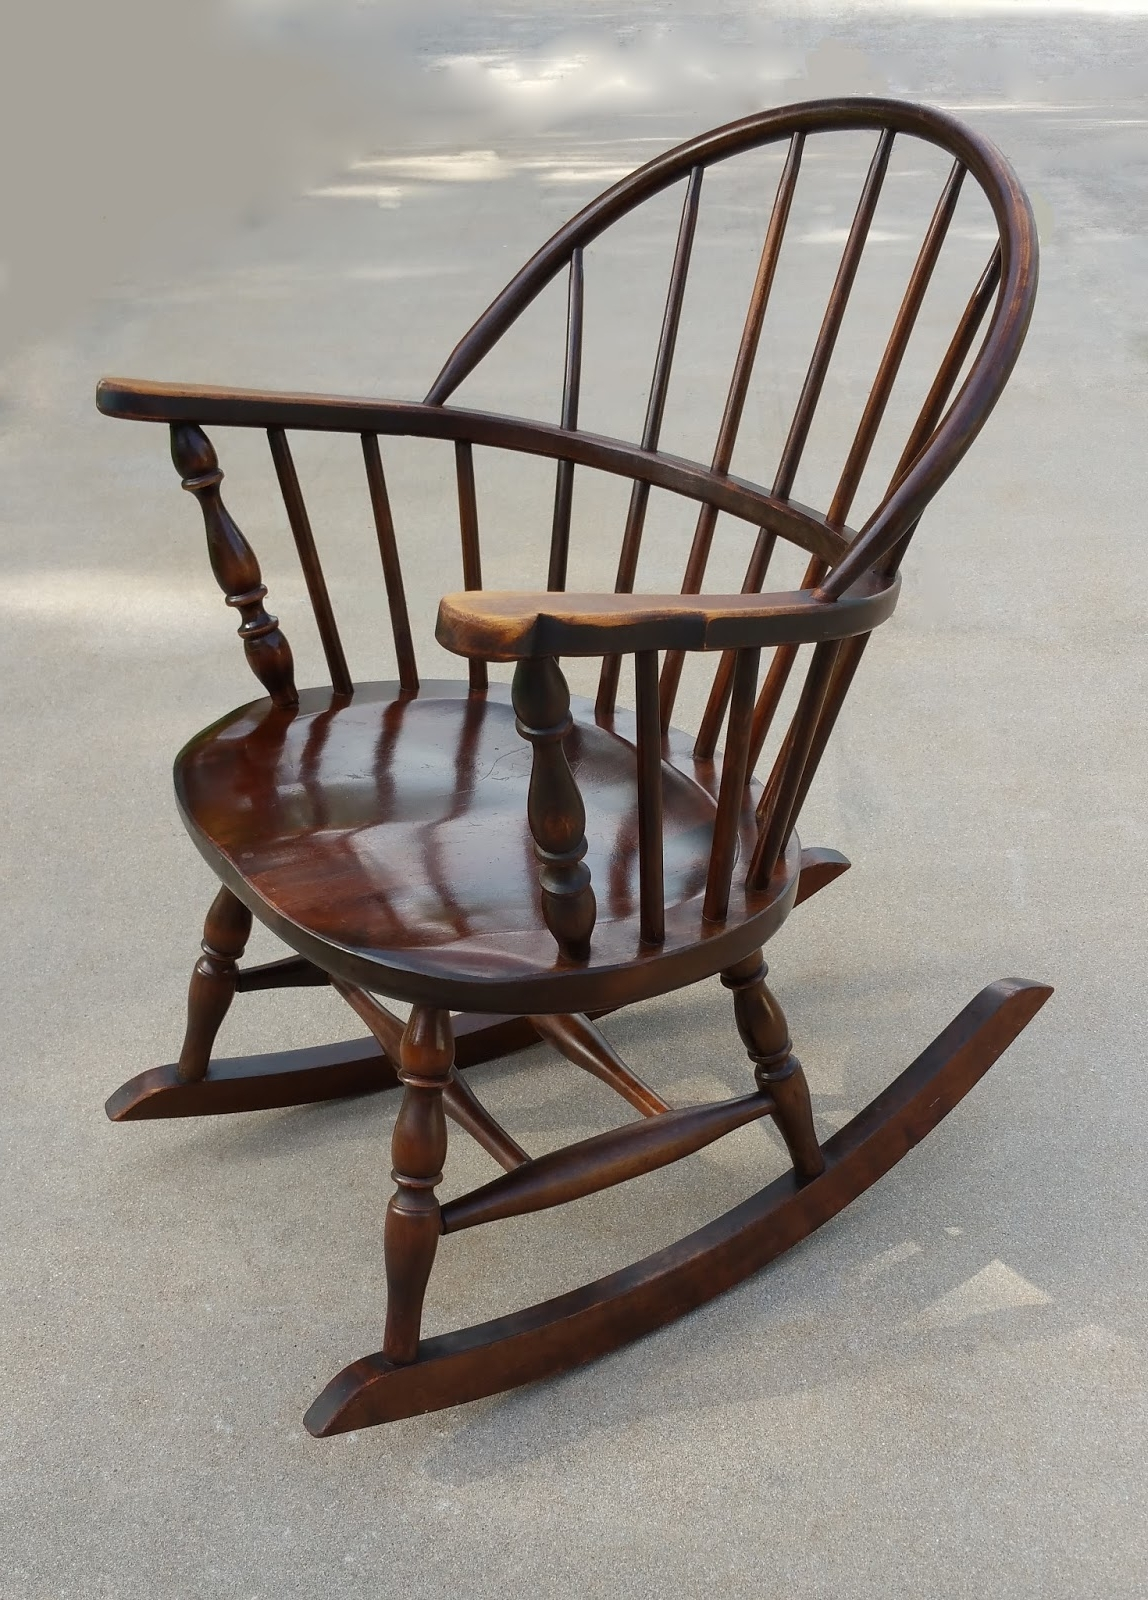 Latest Mendlbarr: Rocking Chairs Every Home Should Have At Least One! For Antique Rocking Chairs (View 14 of 20)